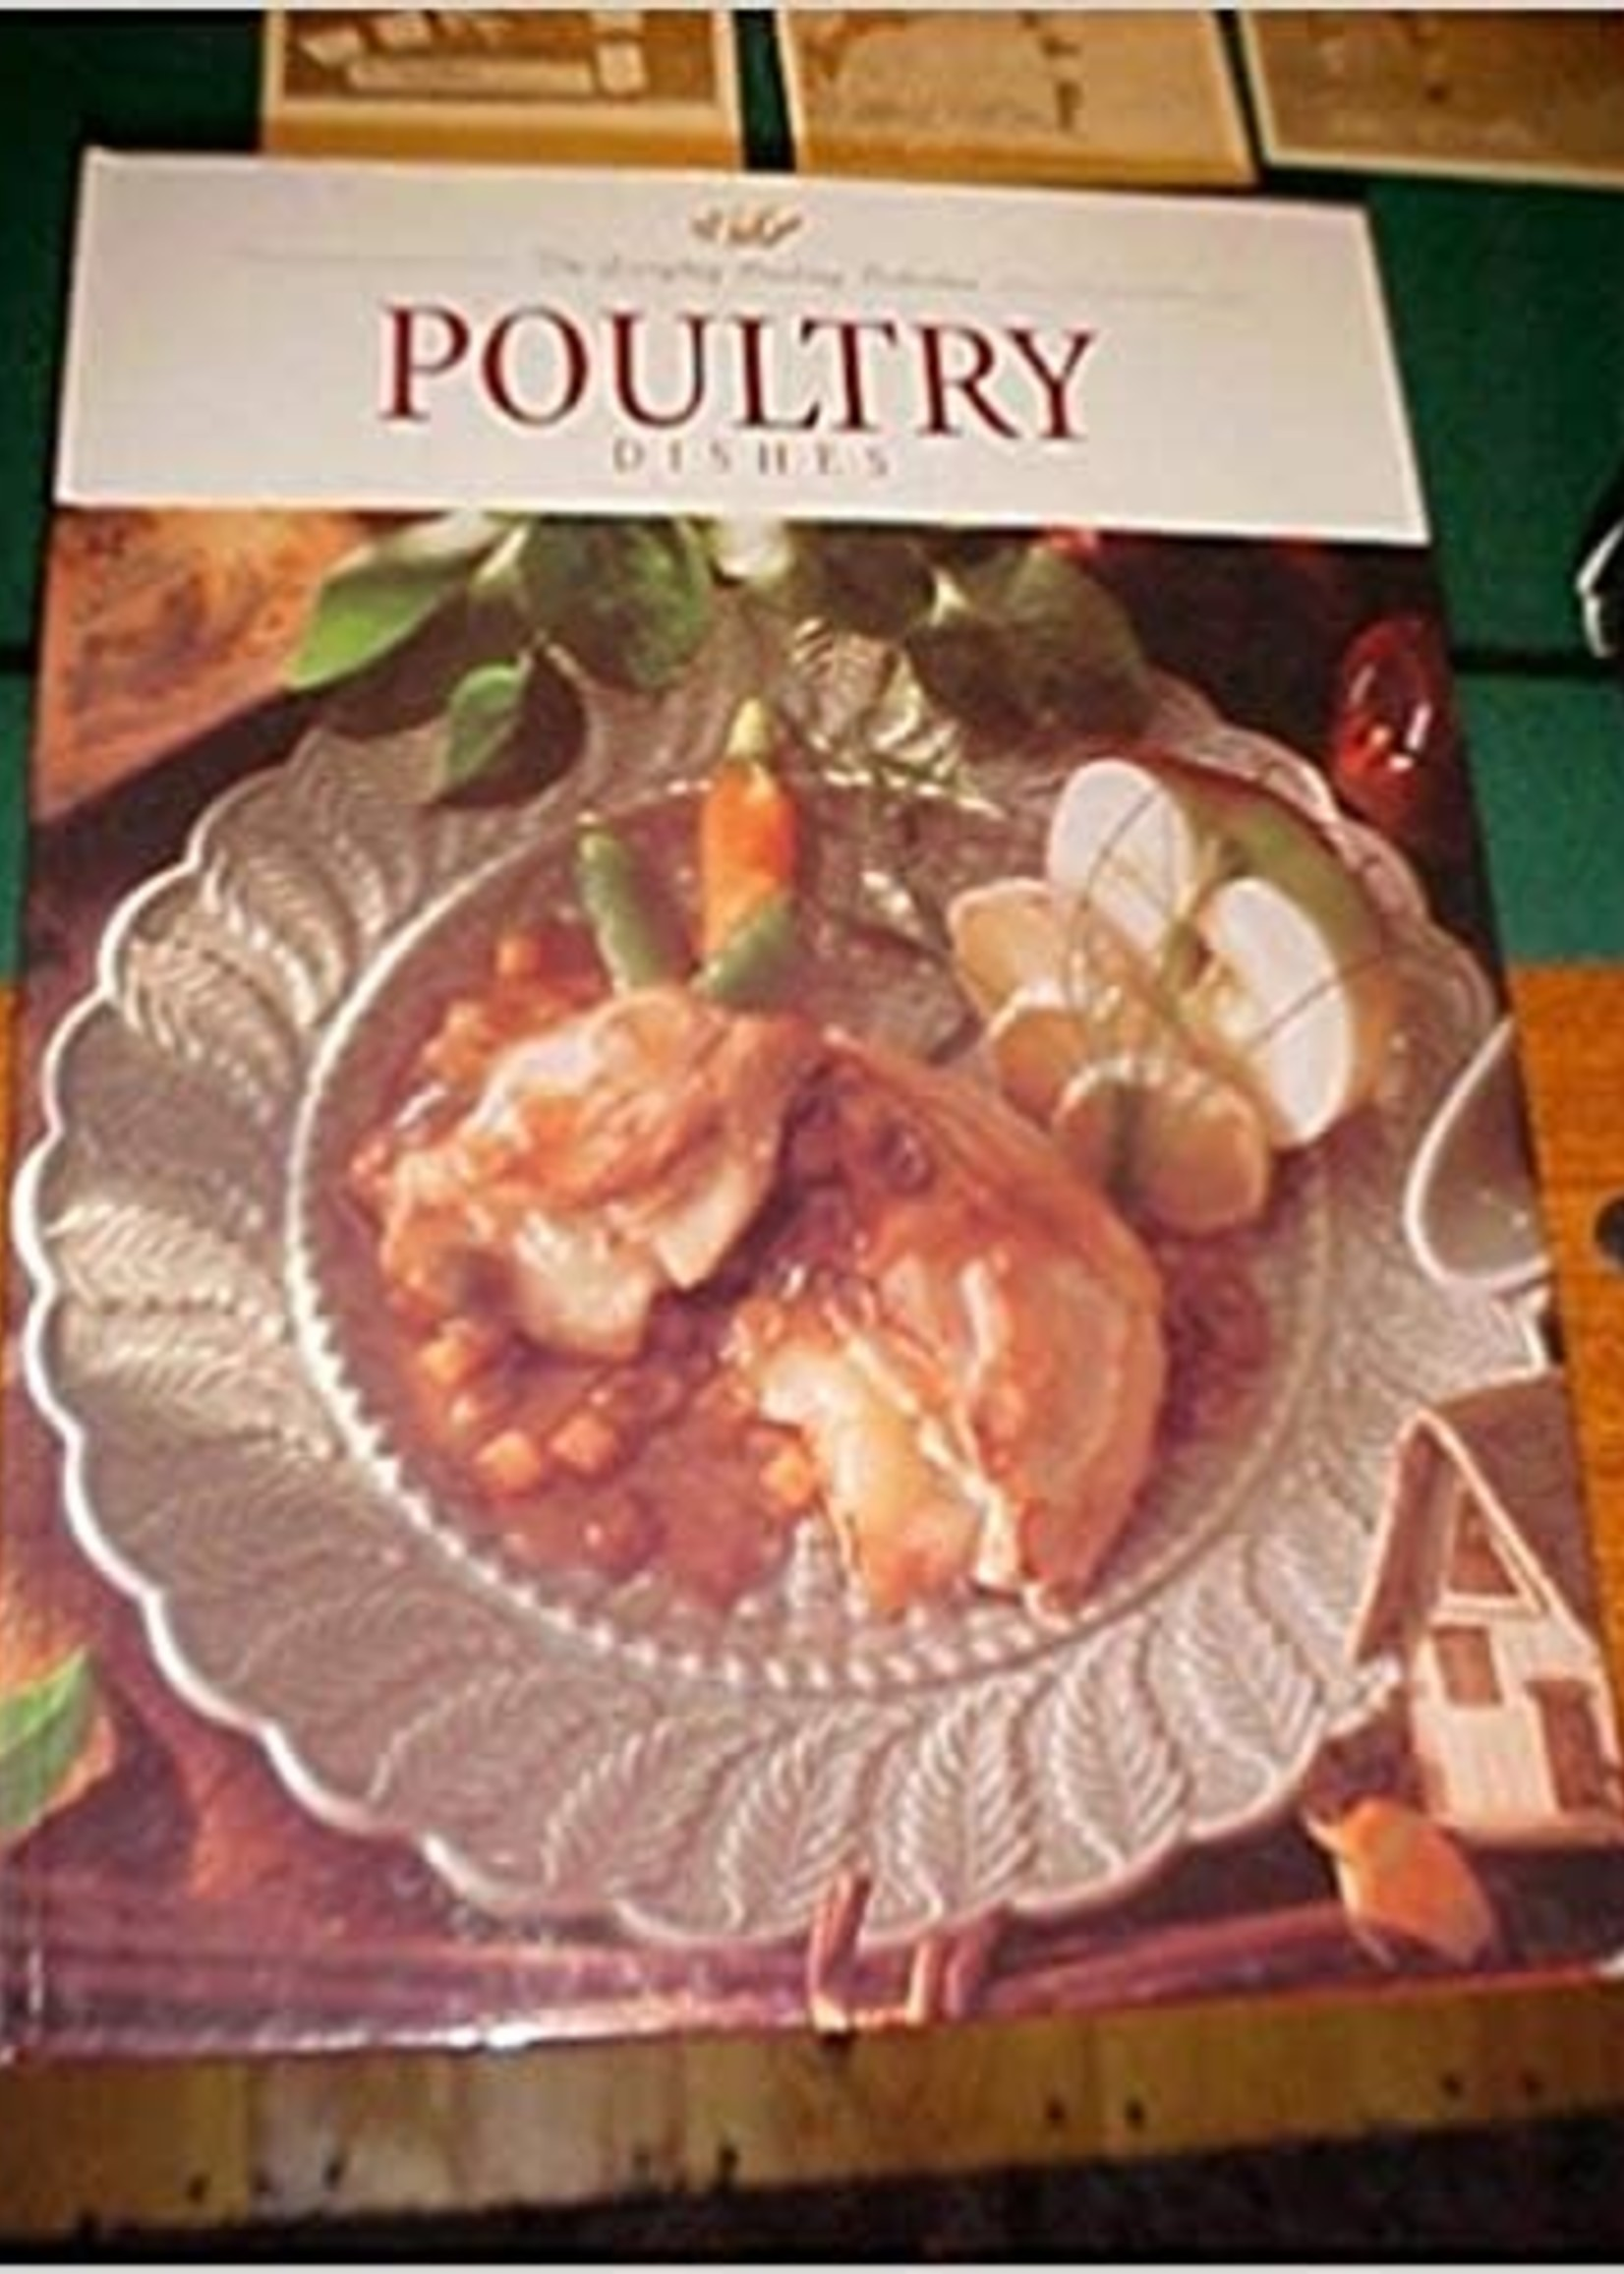 USED - The Everyday Cooking Collection: Poultry by Les Éditions Multi-Concept Inc.